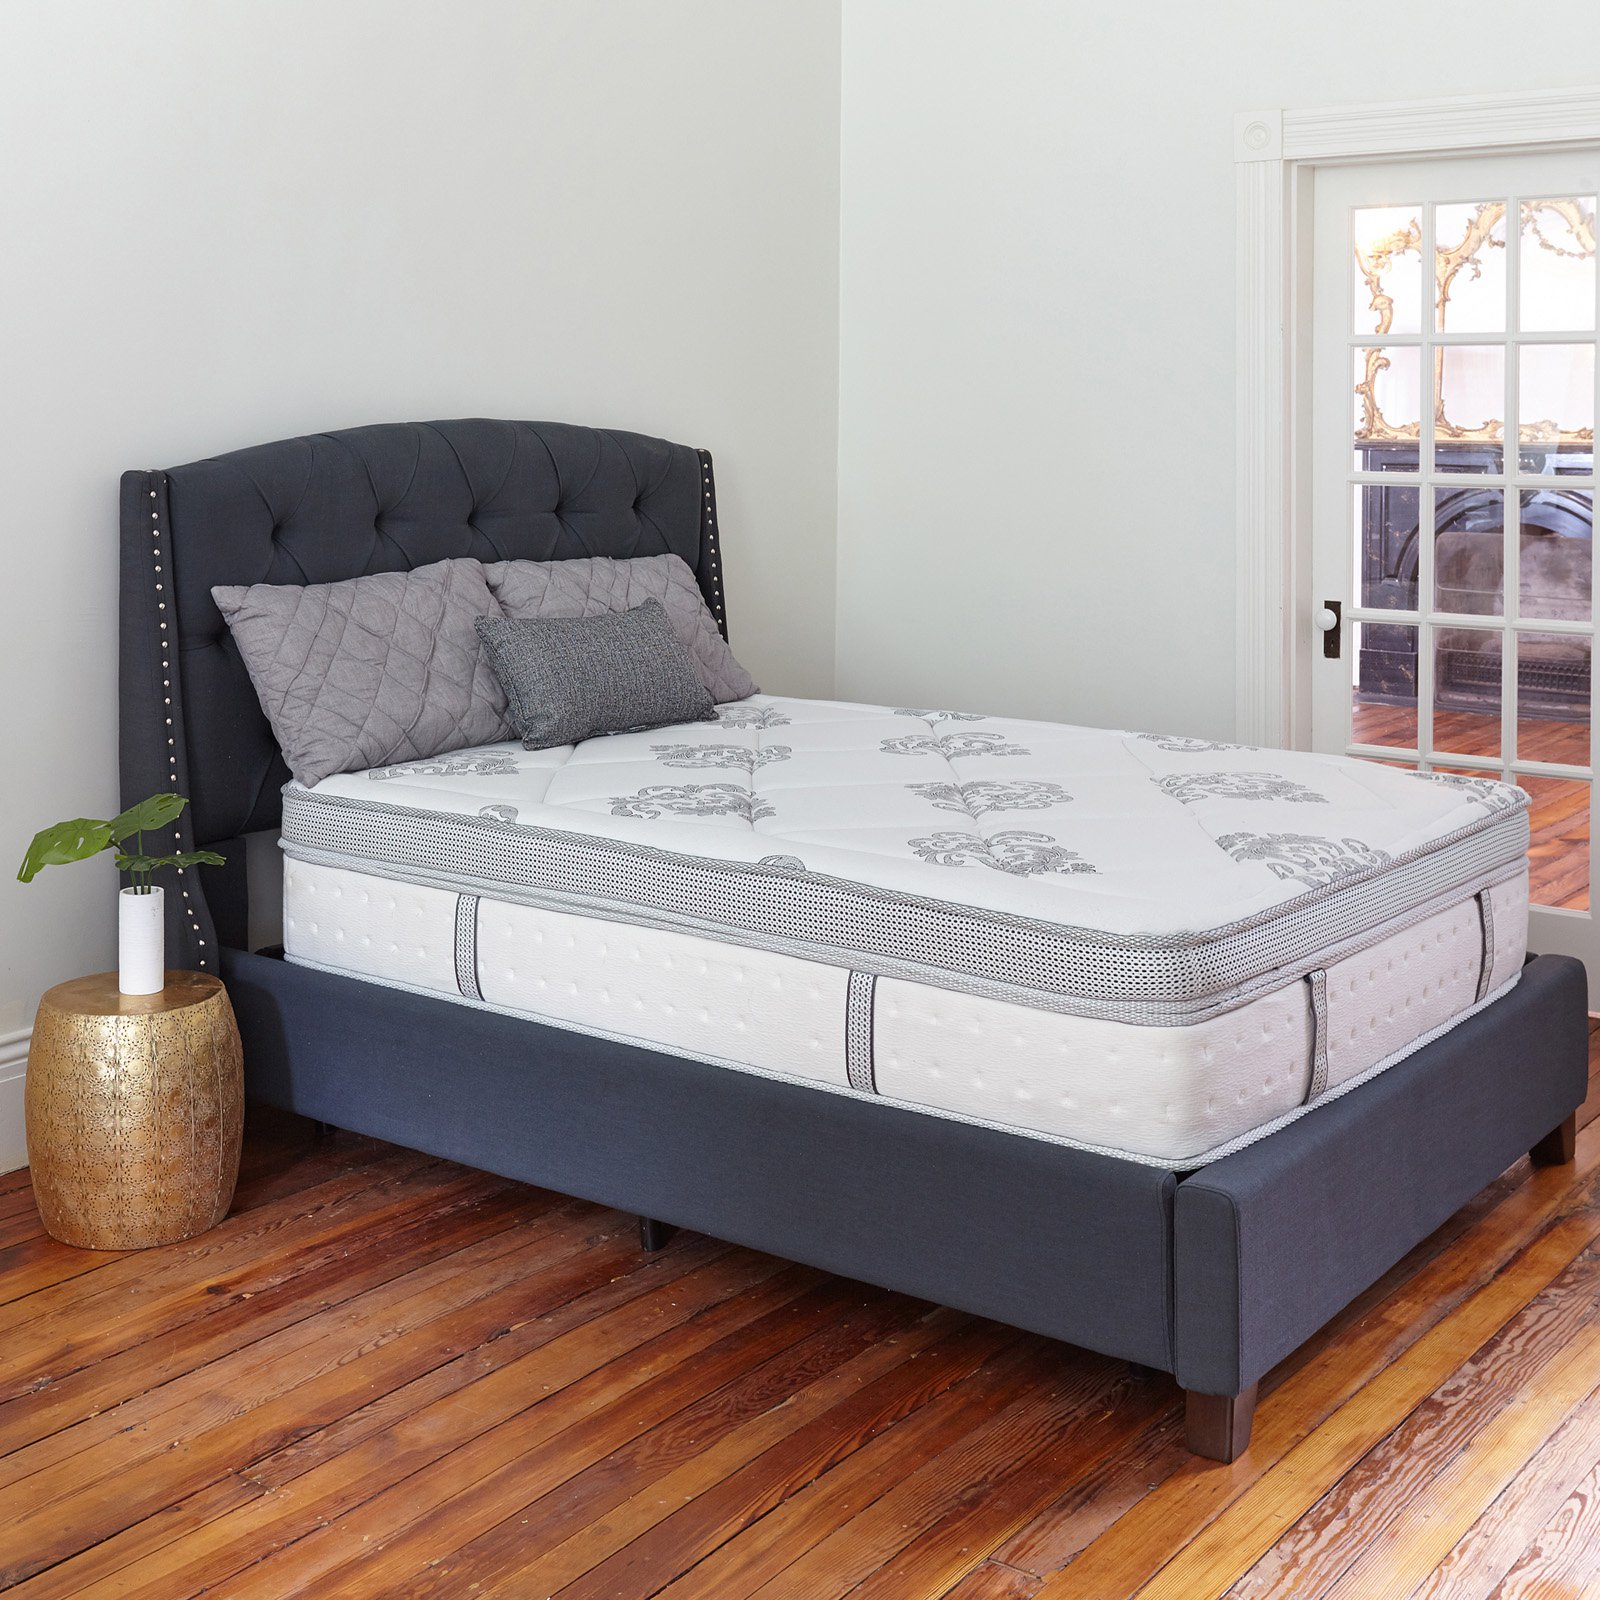 Classic Brands Gramercy 14 in. Hybrid Cool Gel Memory Foam and Innerspring Mattress